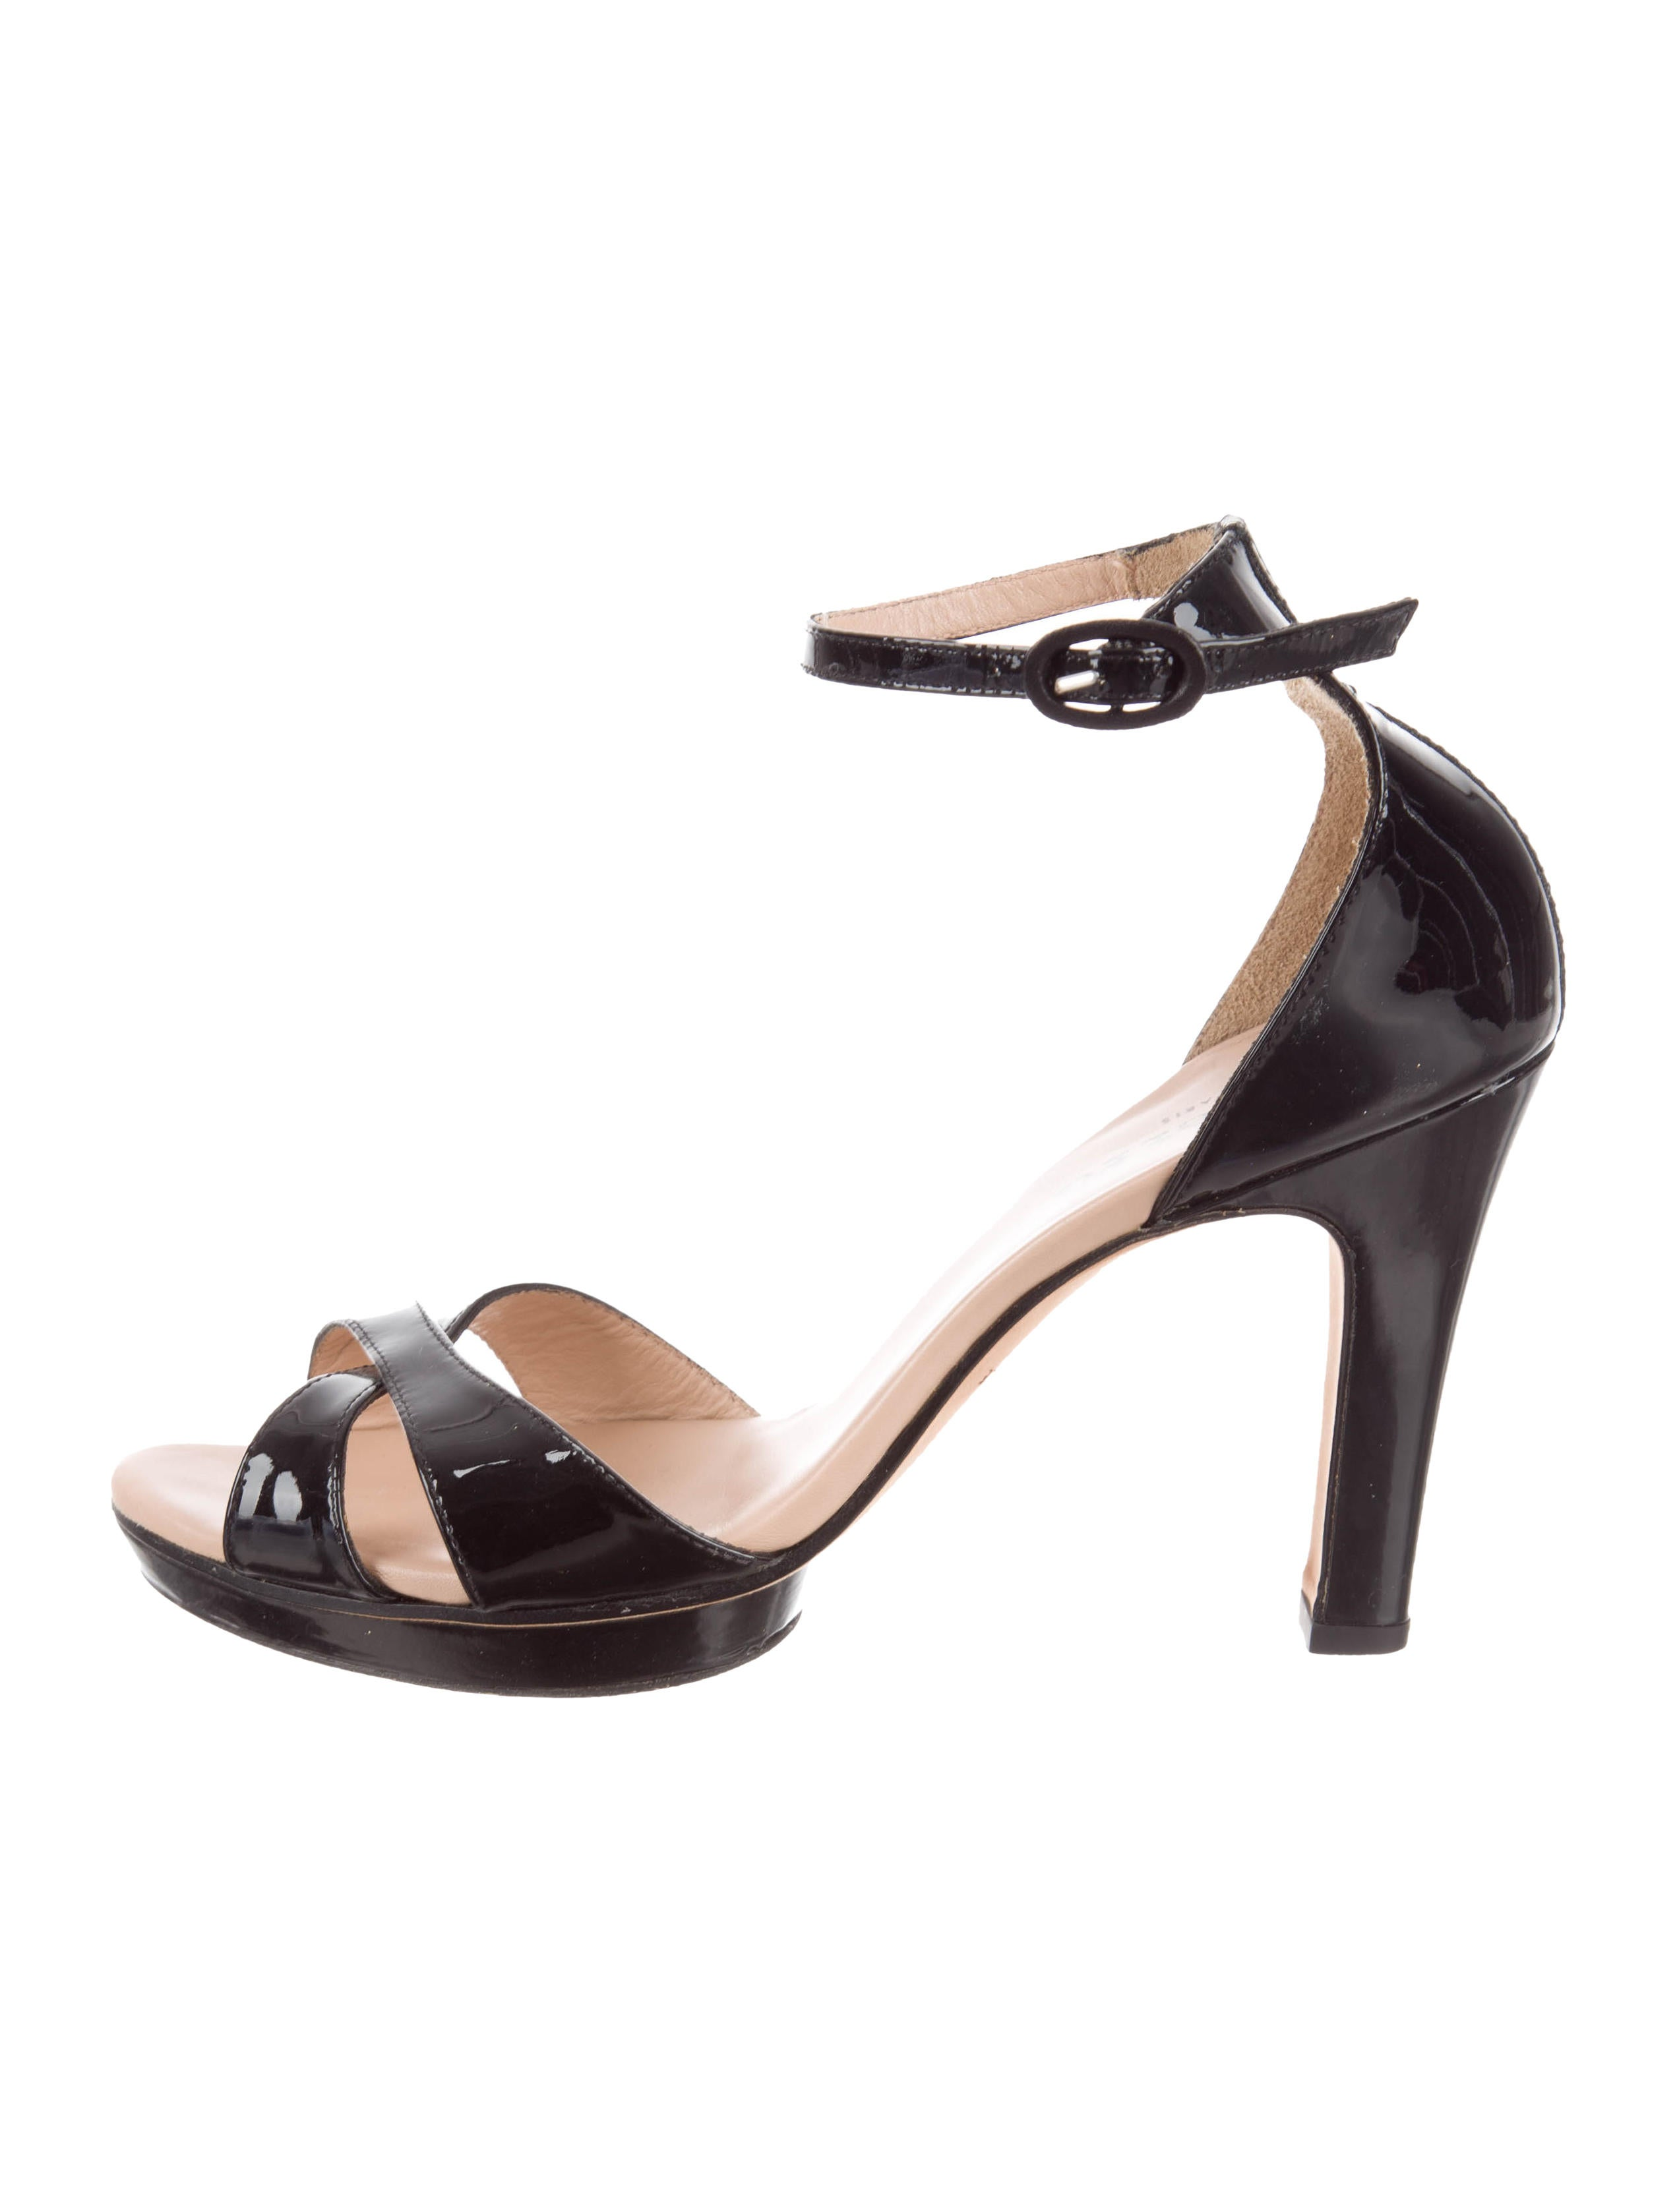 Repetto Patent Leather Crossover Sandals